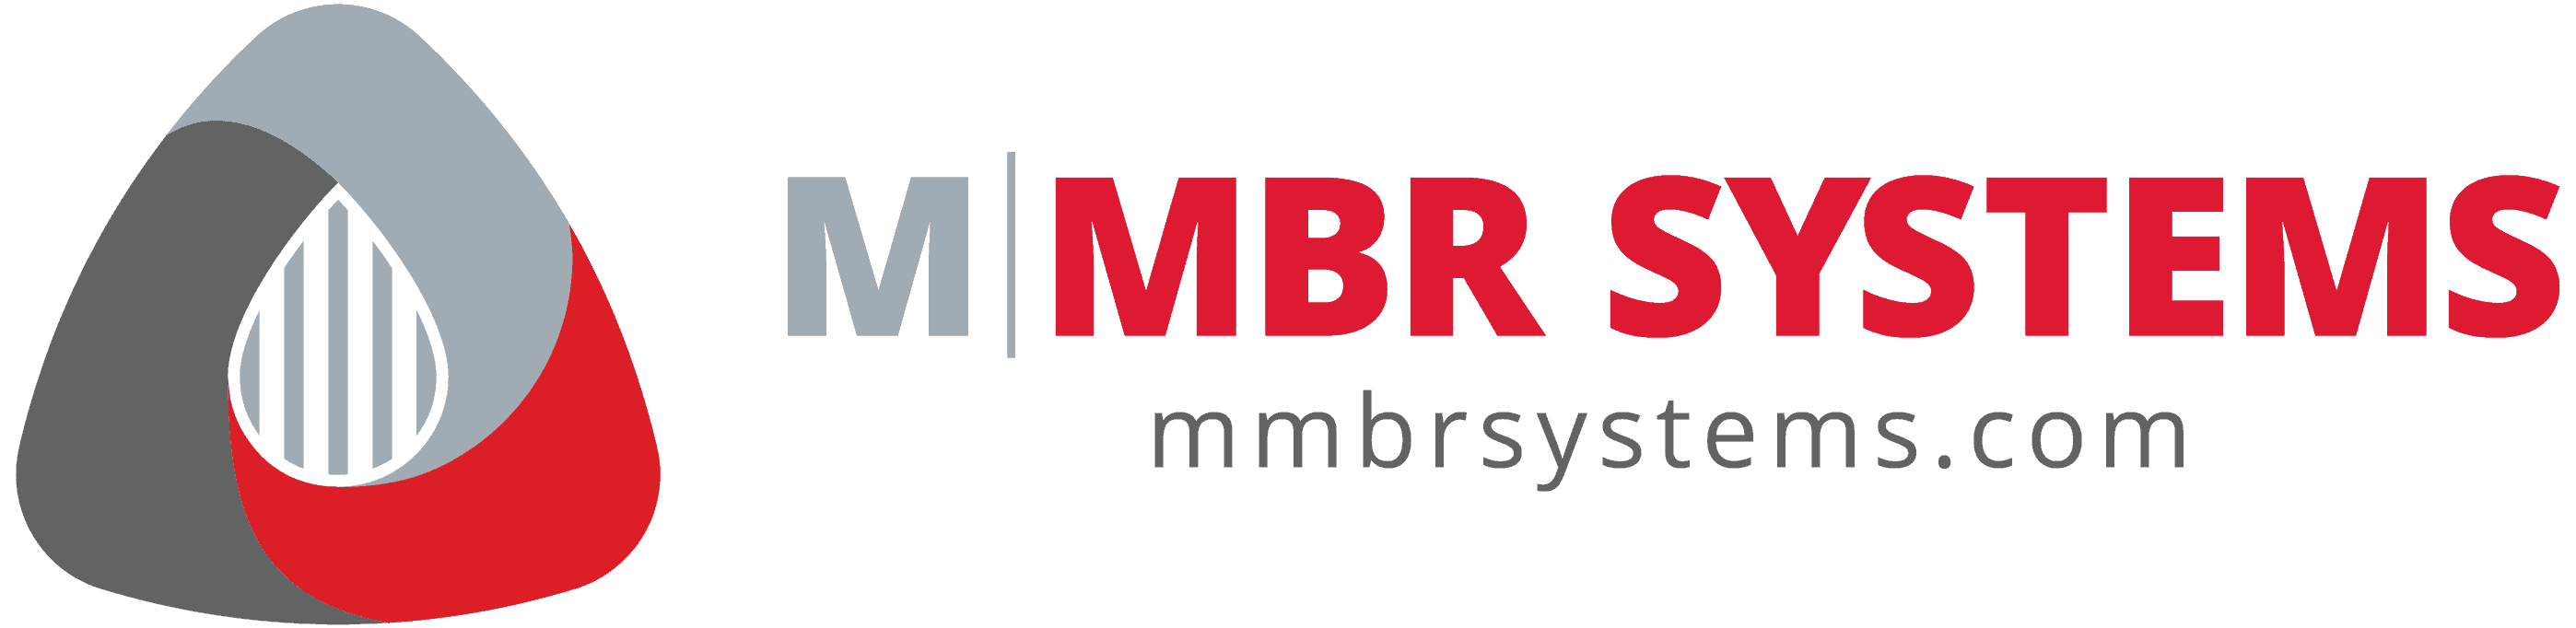 M|MBR Systems